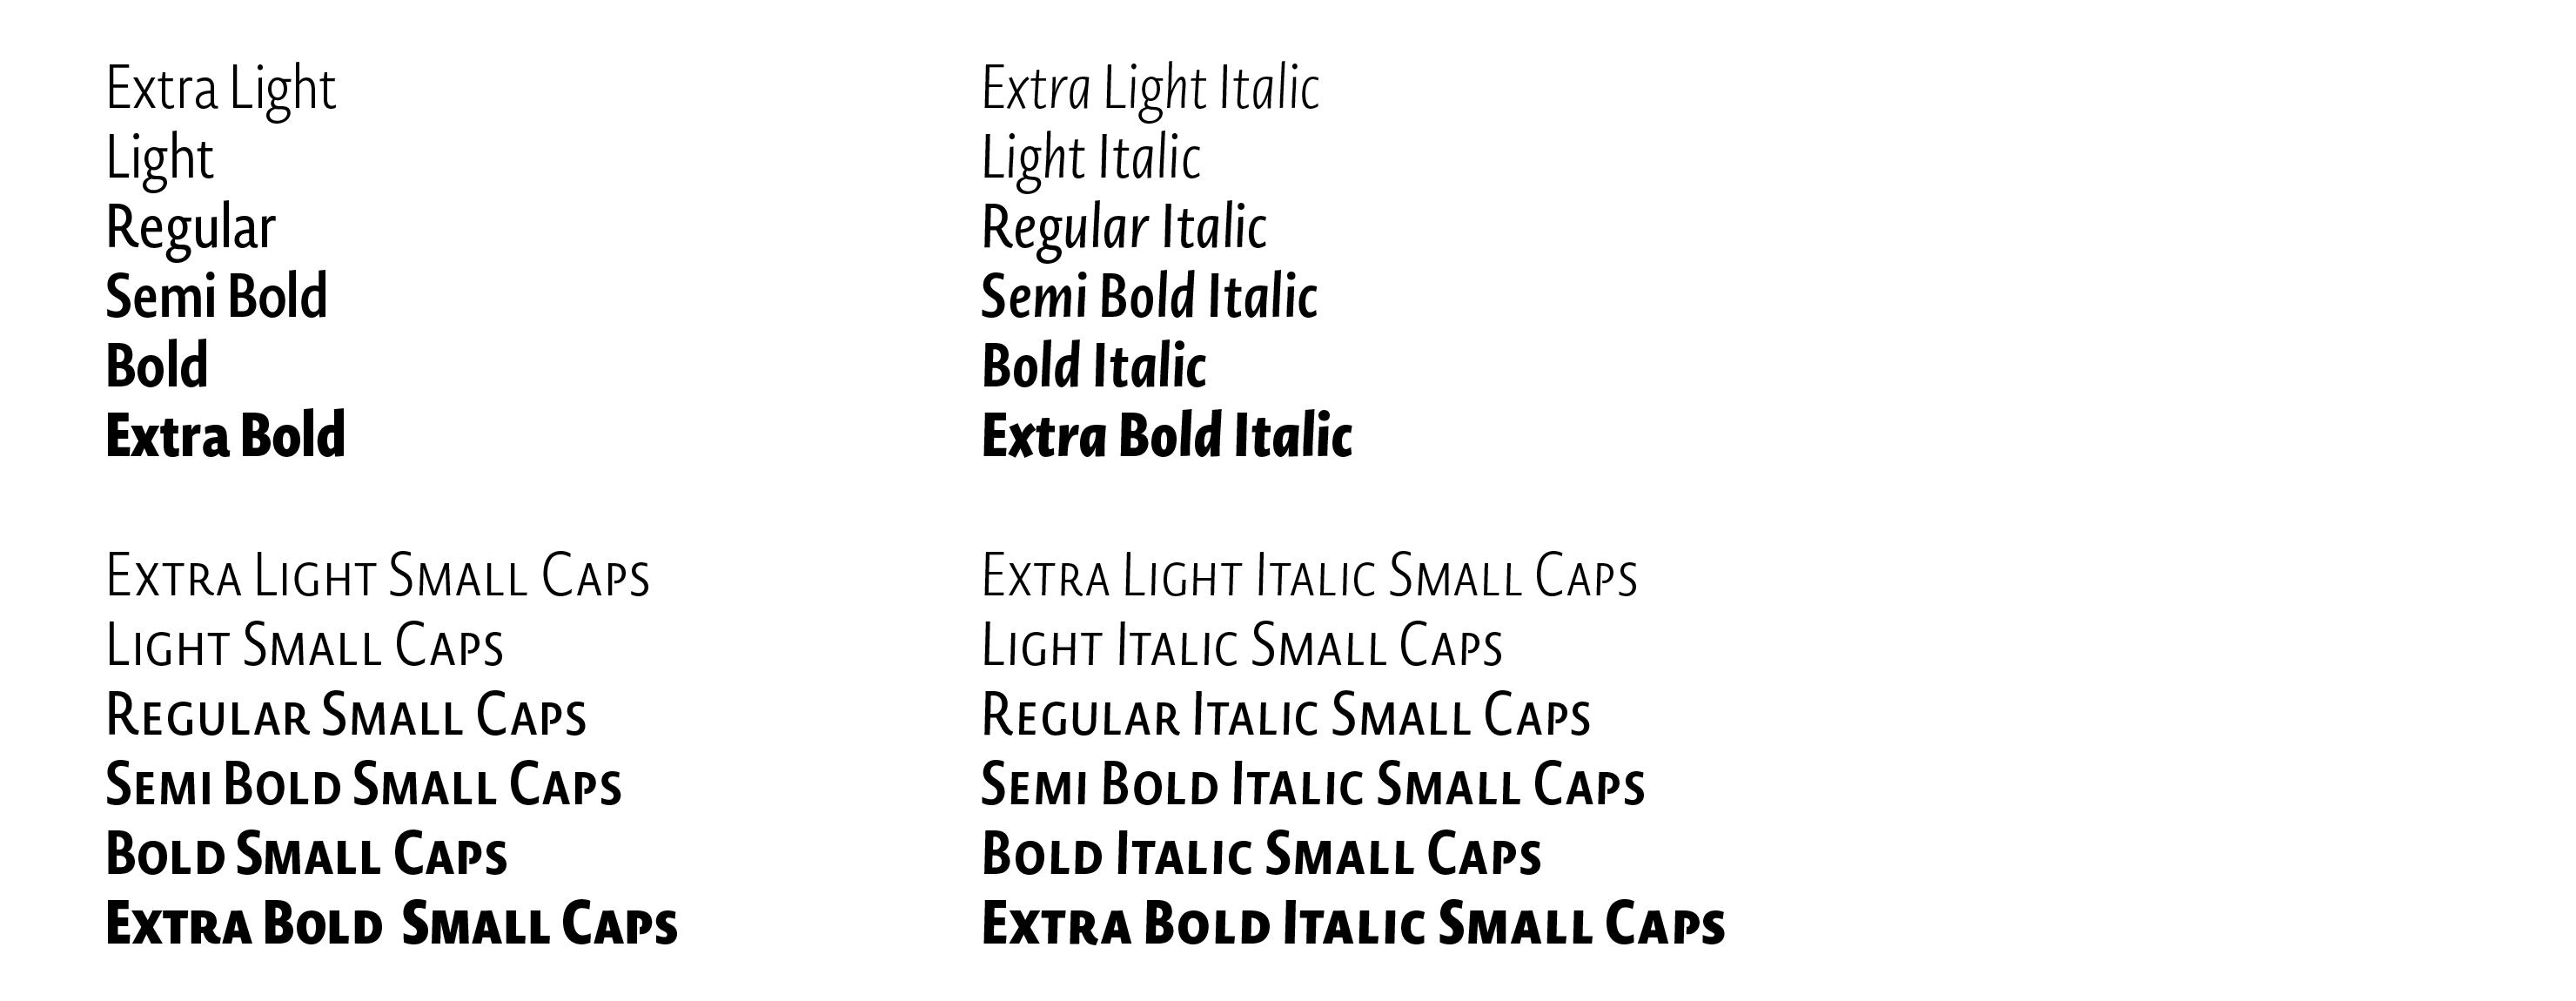 Typeface Novel Sans Condensed C01 Atlas Font Foundry